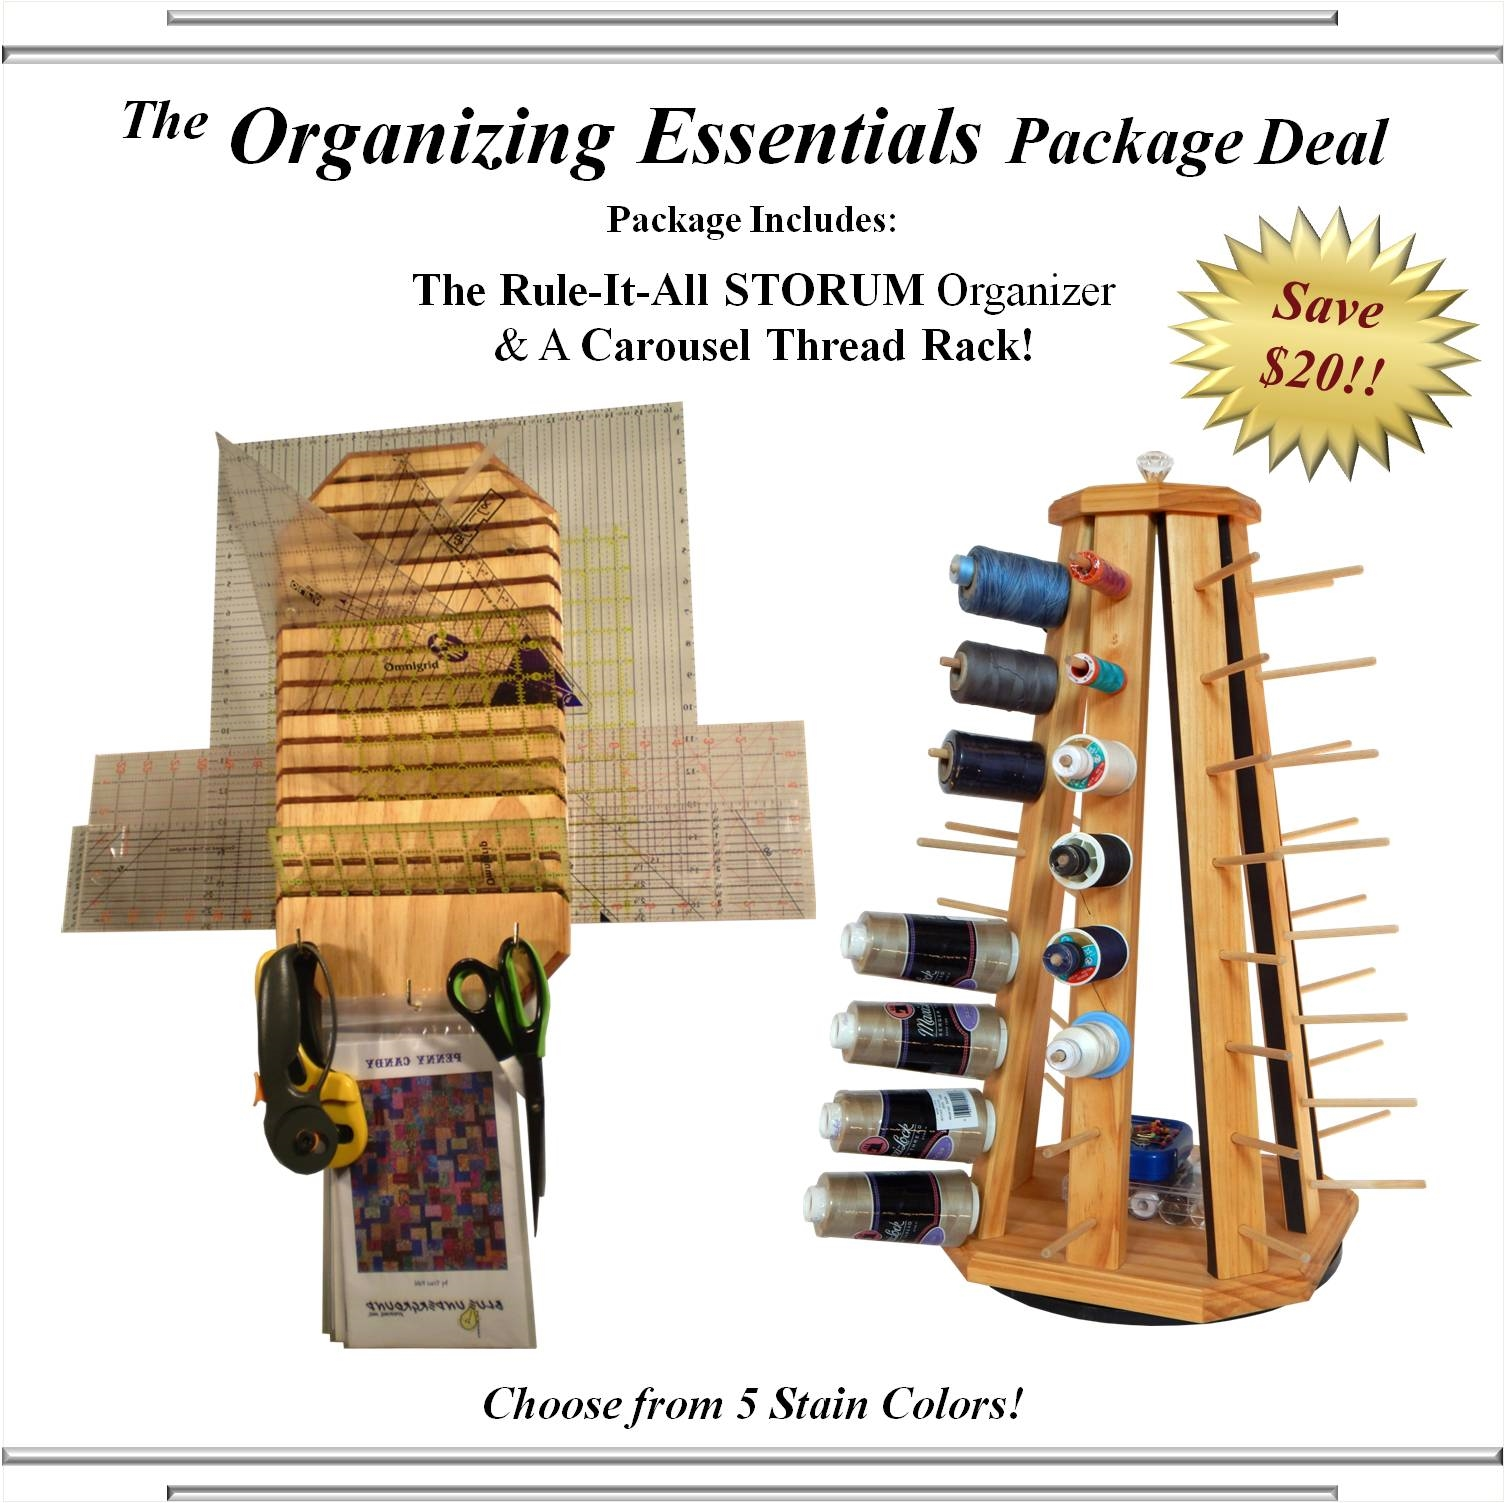 The Organizing Essentials Package Deal